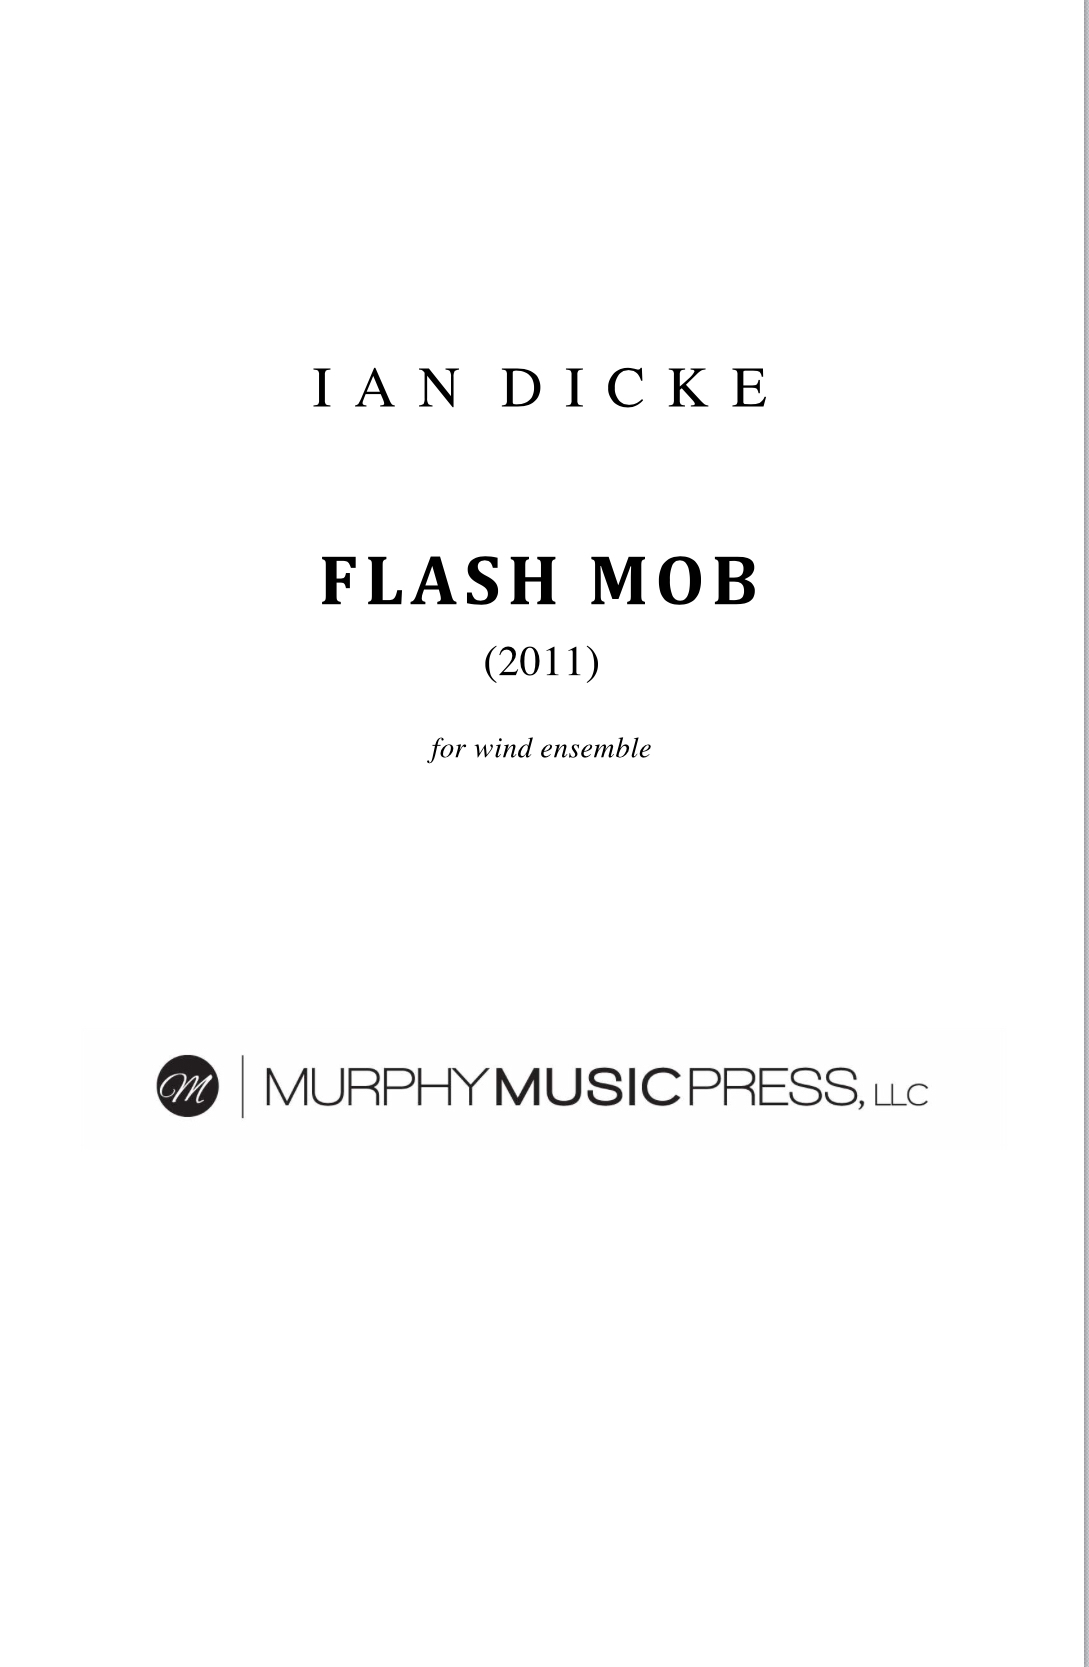 Flash Mob by Ian Dicke